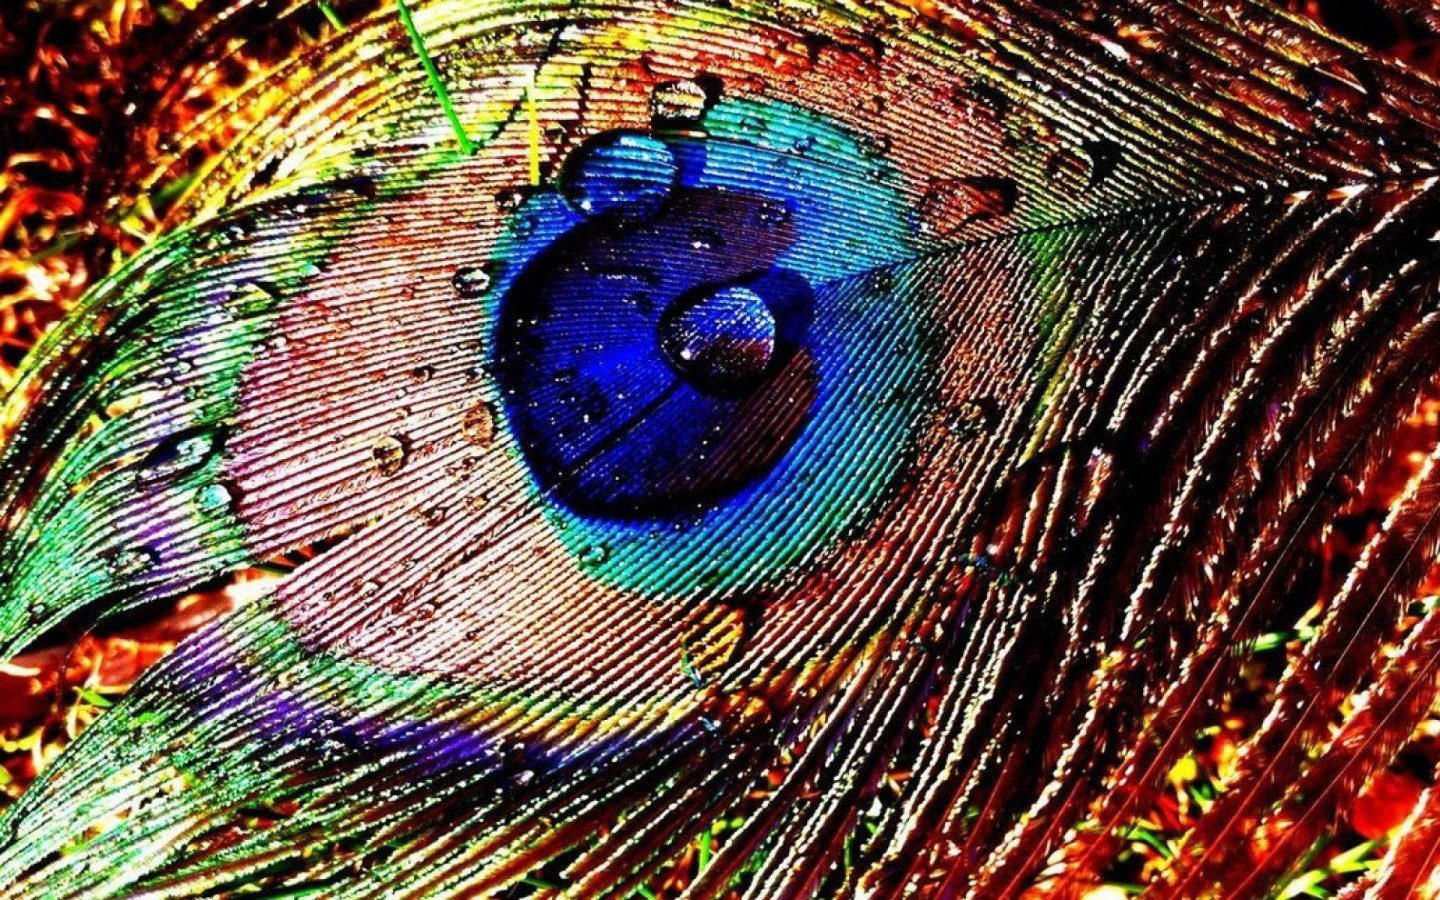 Peacock Feather Design Wallpaper On 1440x900